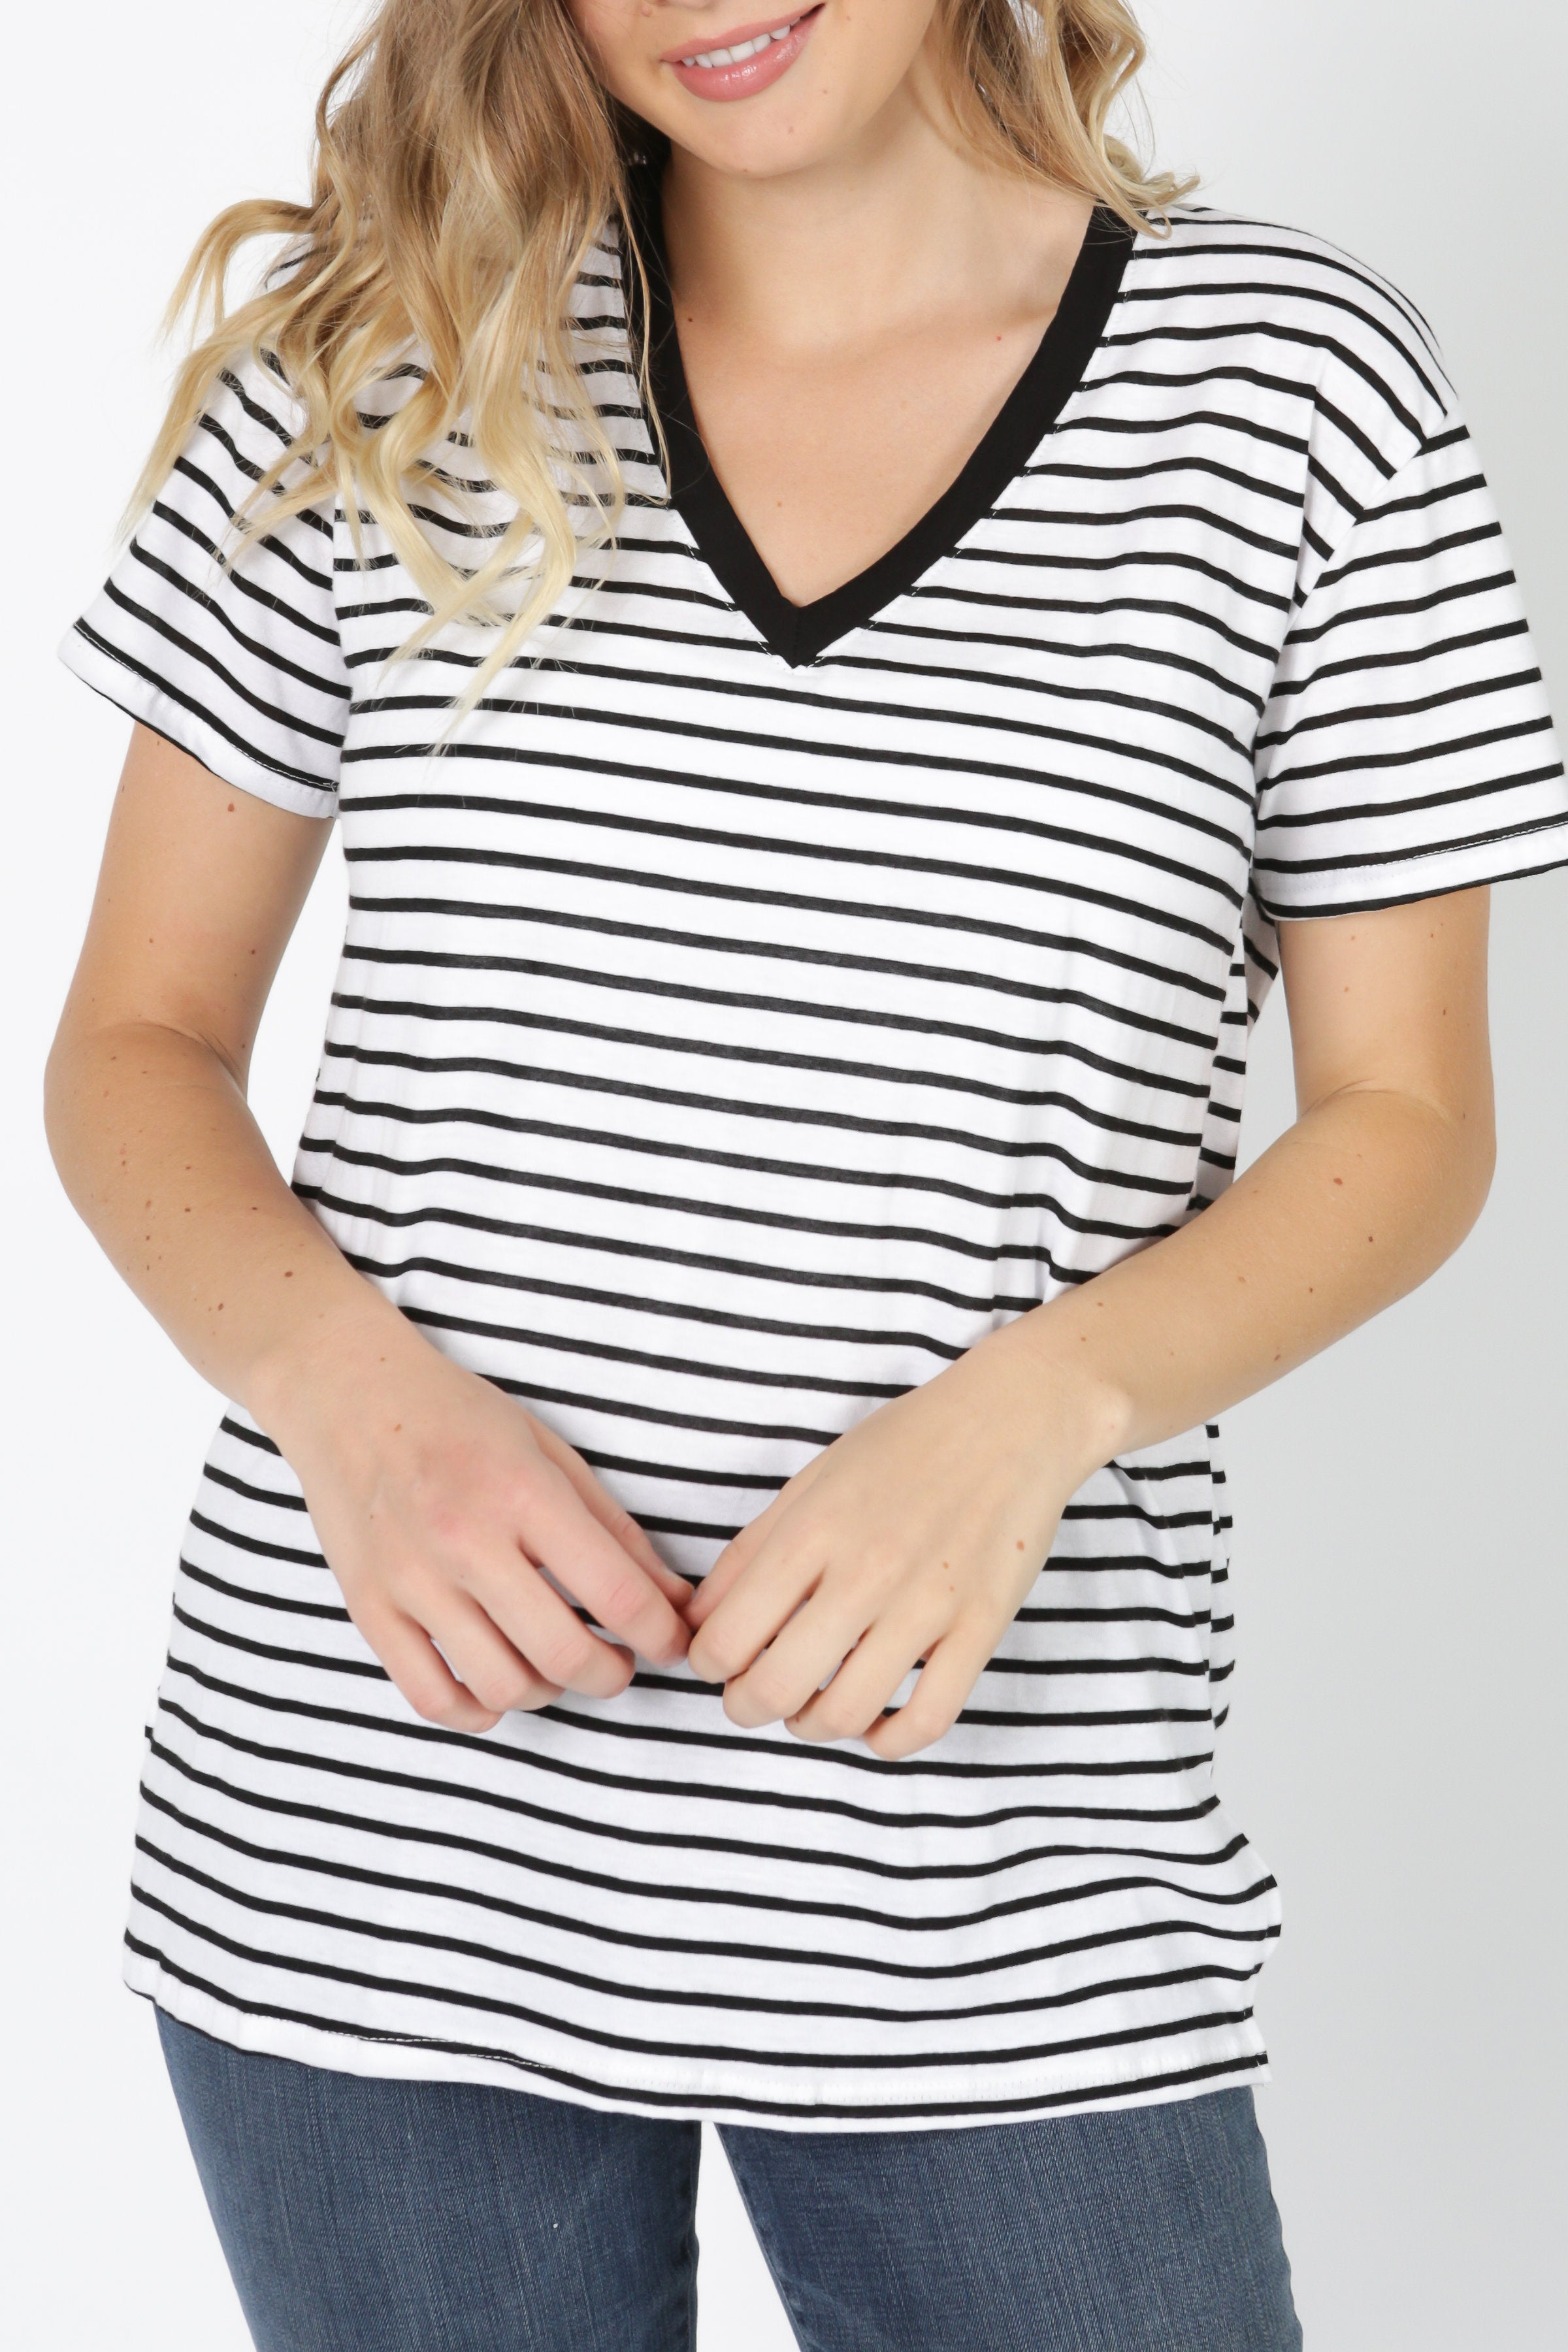 Candace Striped Tee - White